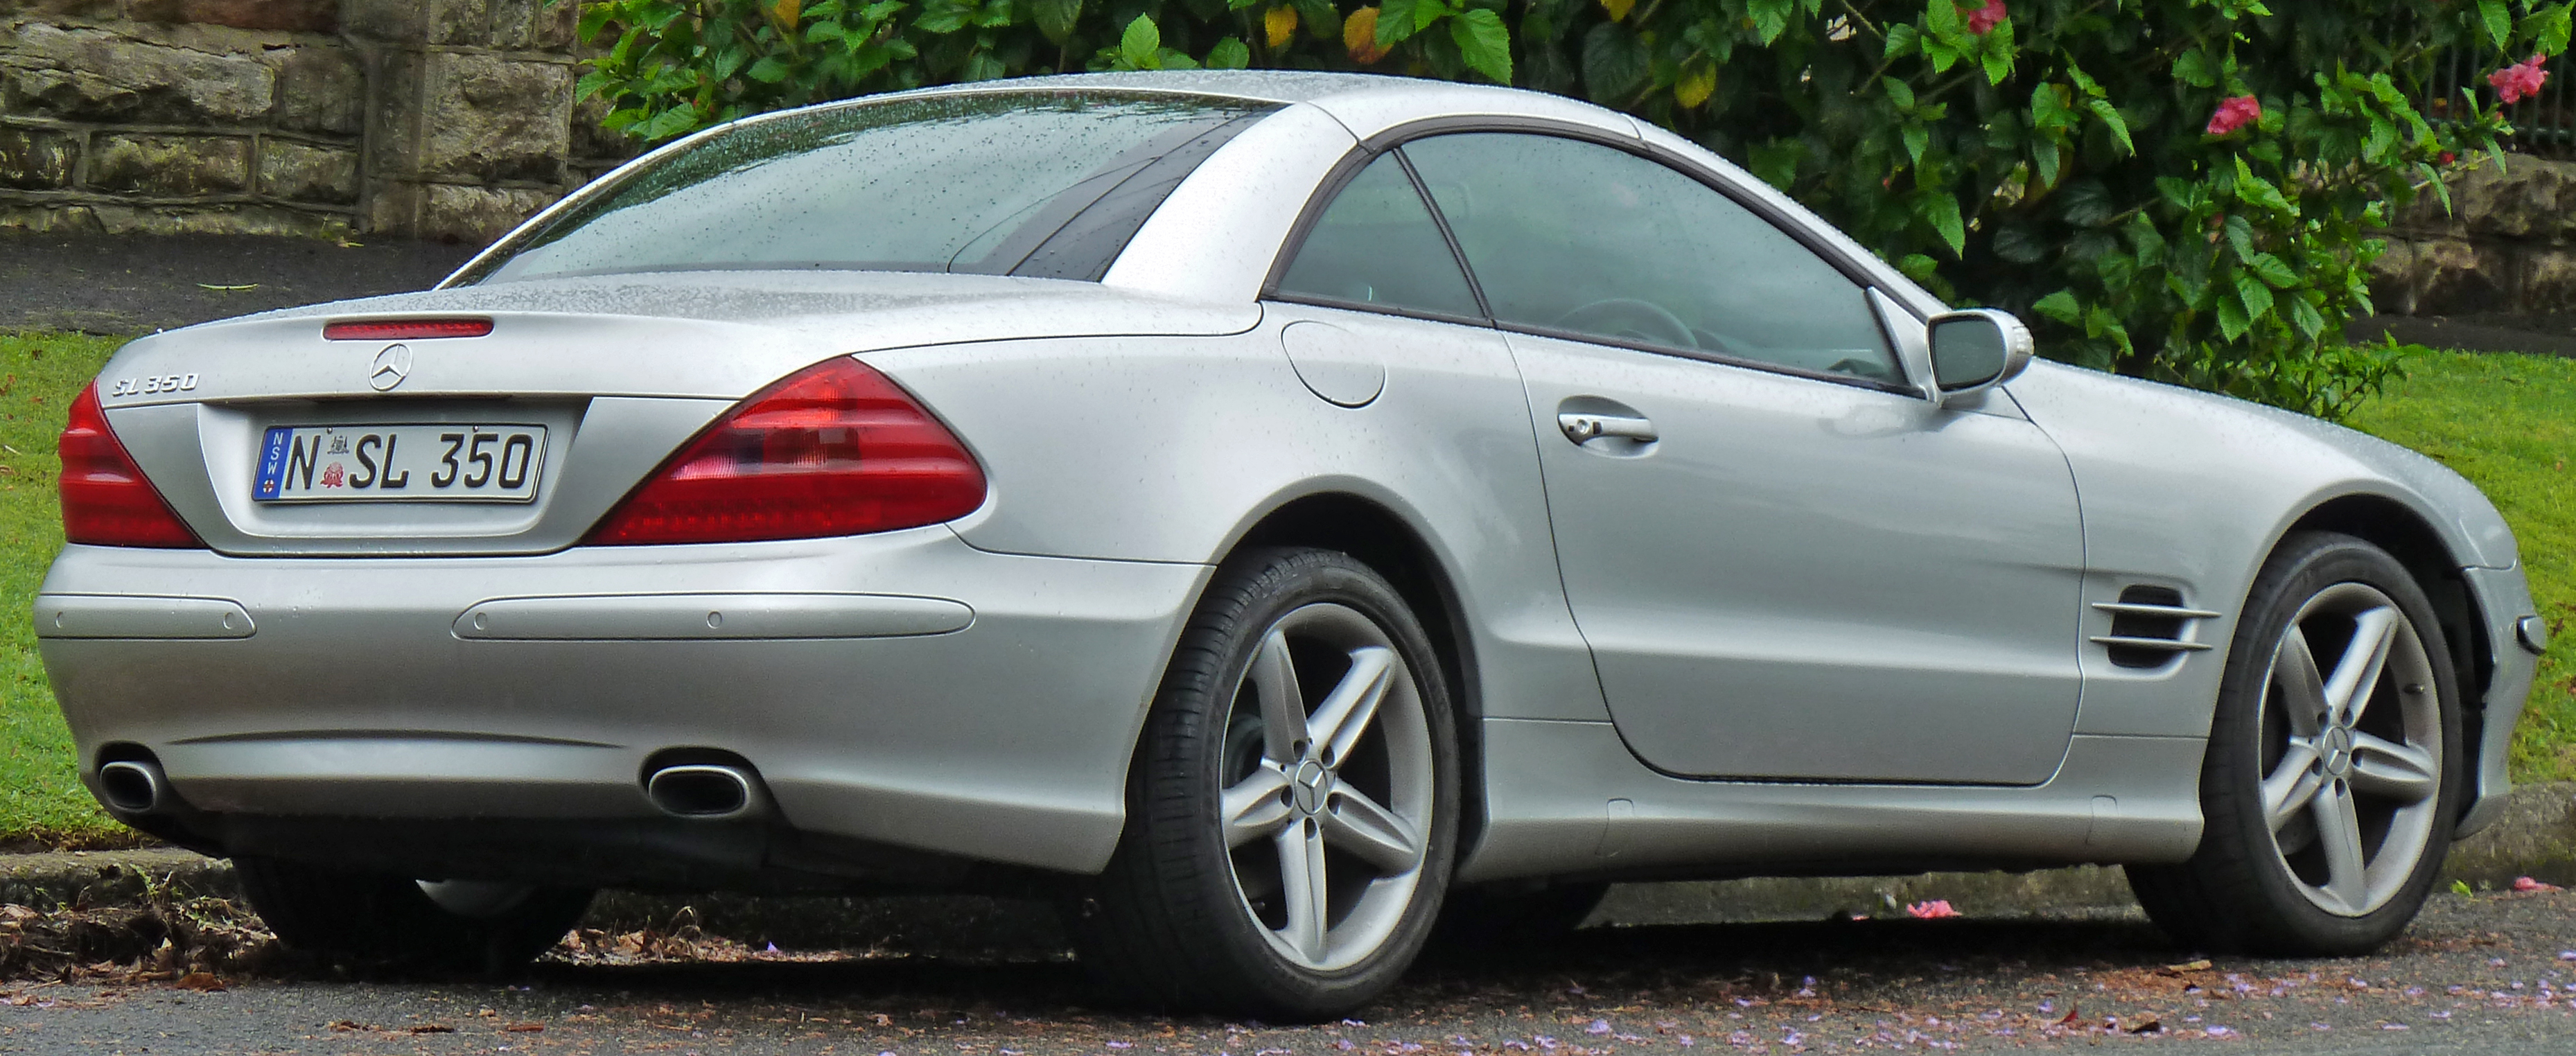 2003 Mercedes Benz SL #6